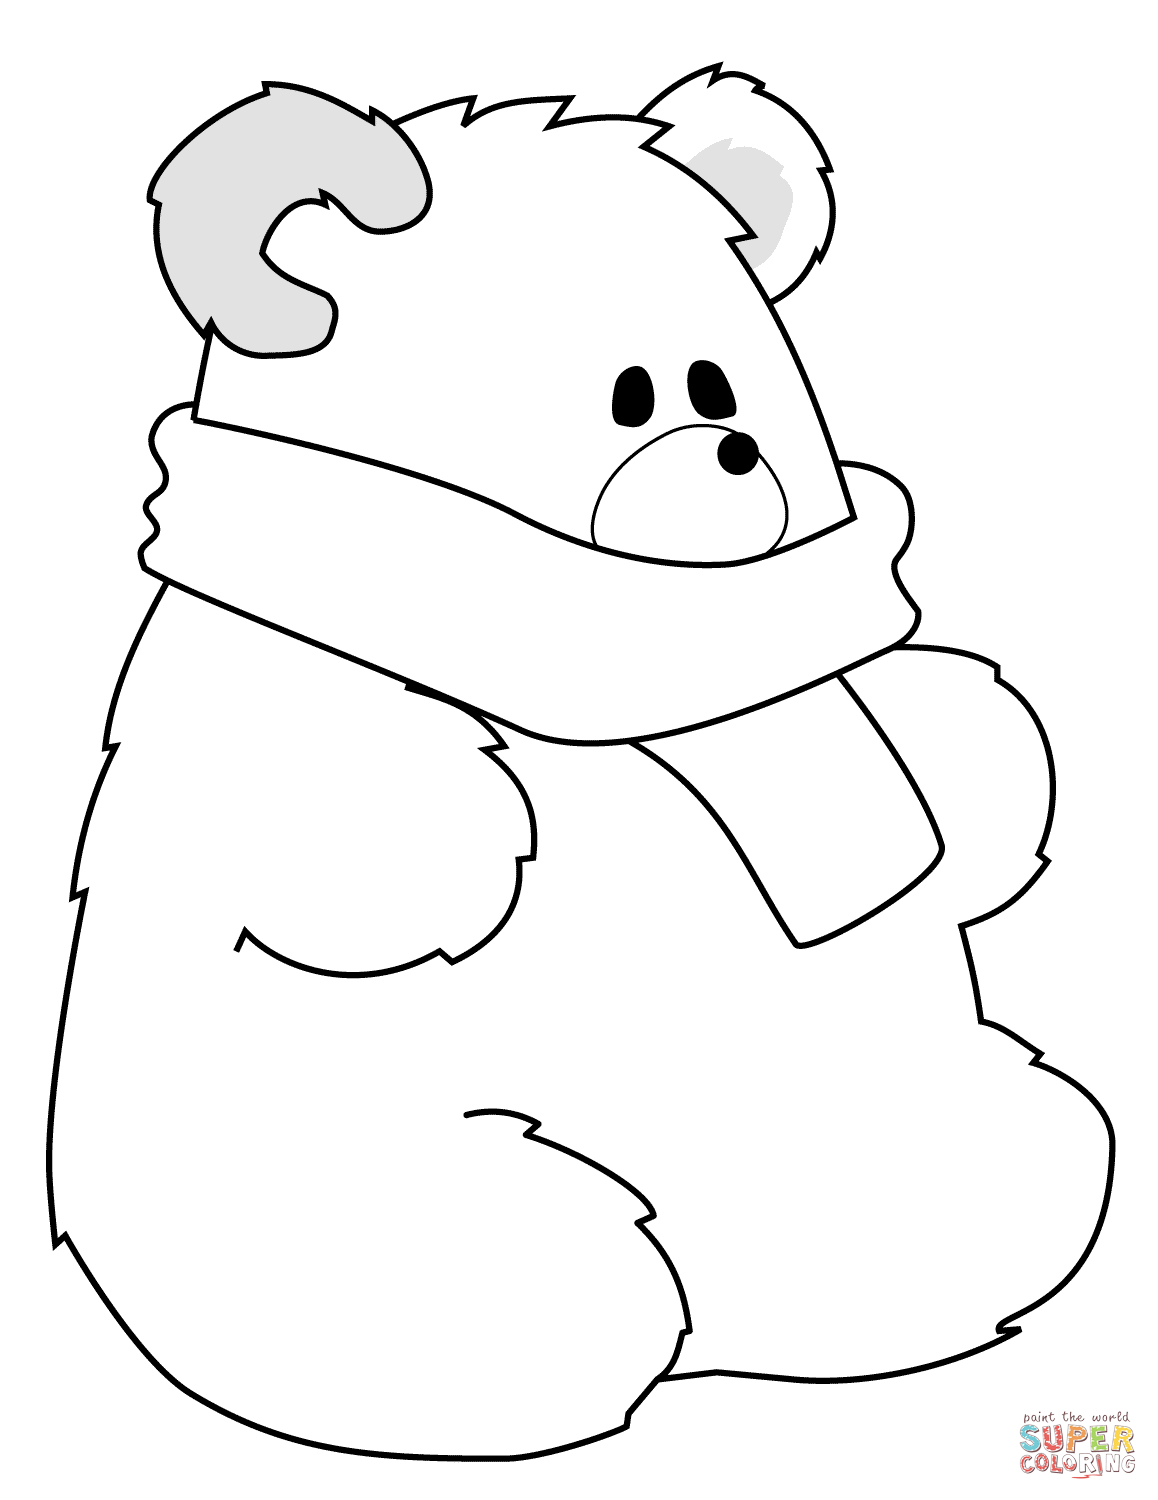 Polar Bear Coloring Pages Polar Bear With Scarf Coloring Page Free Printable Coloring Pages